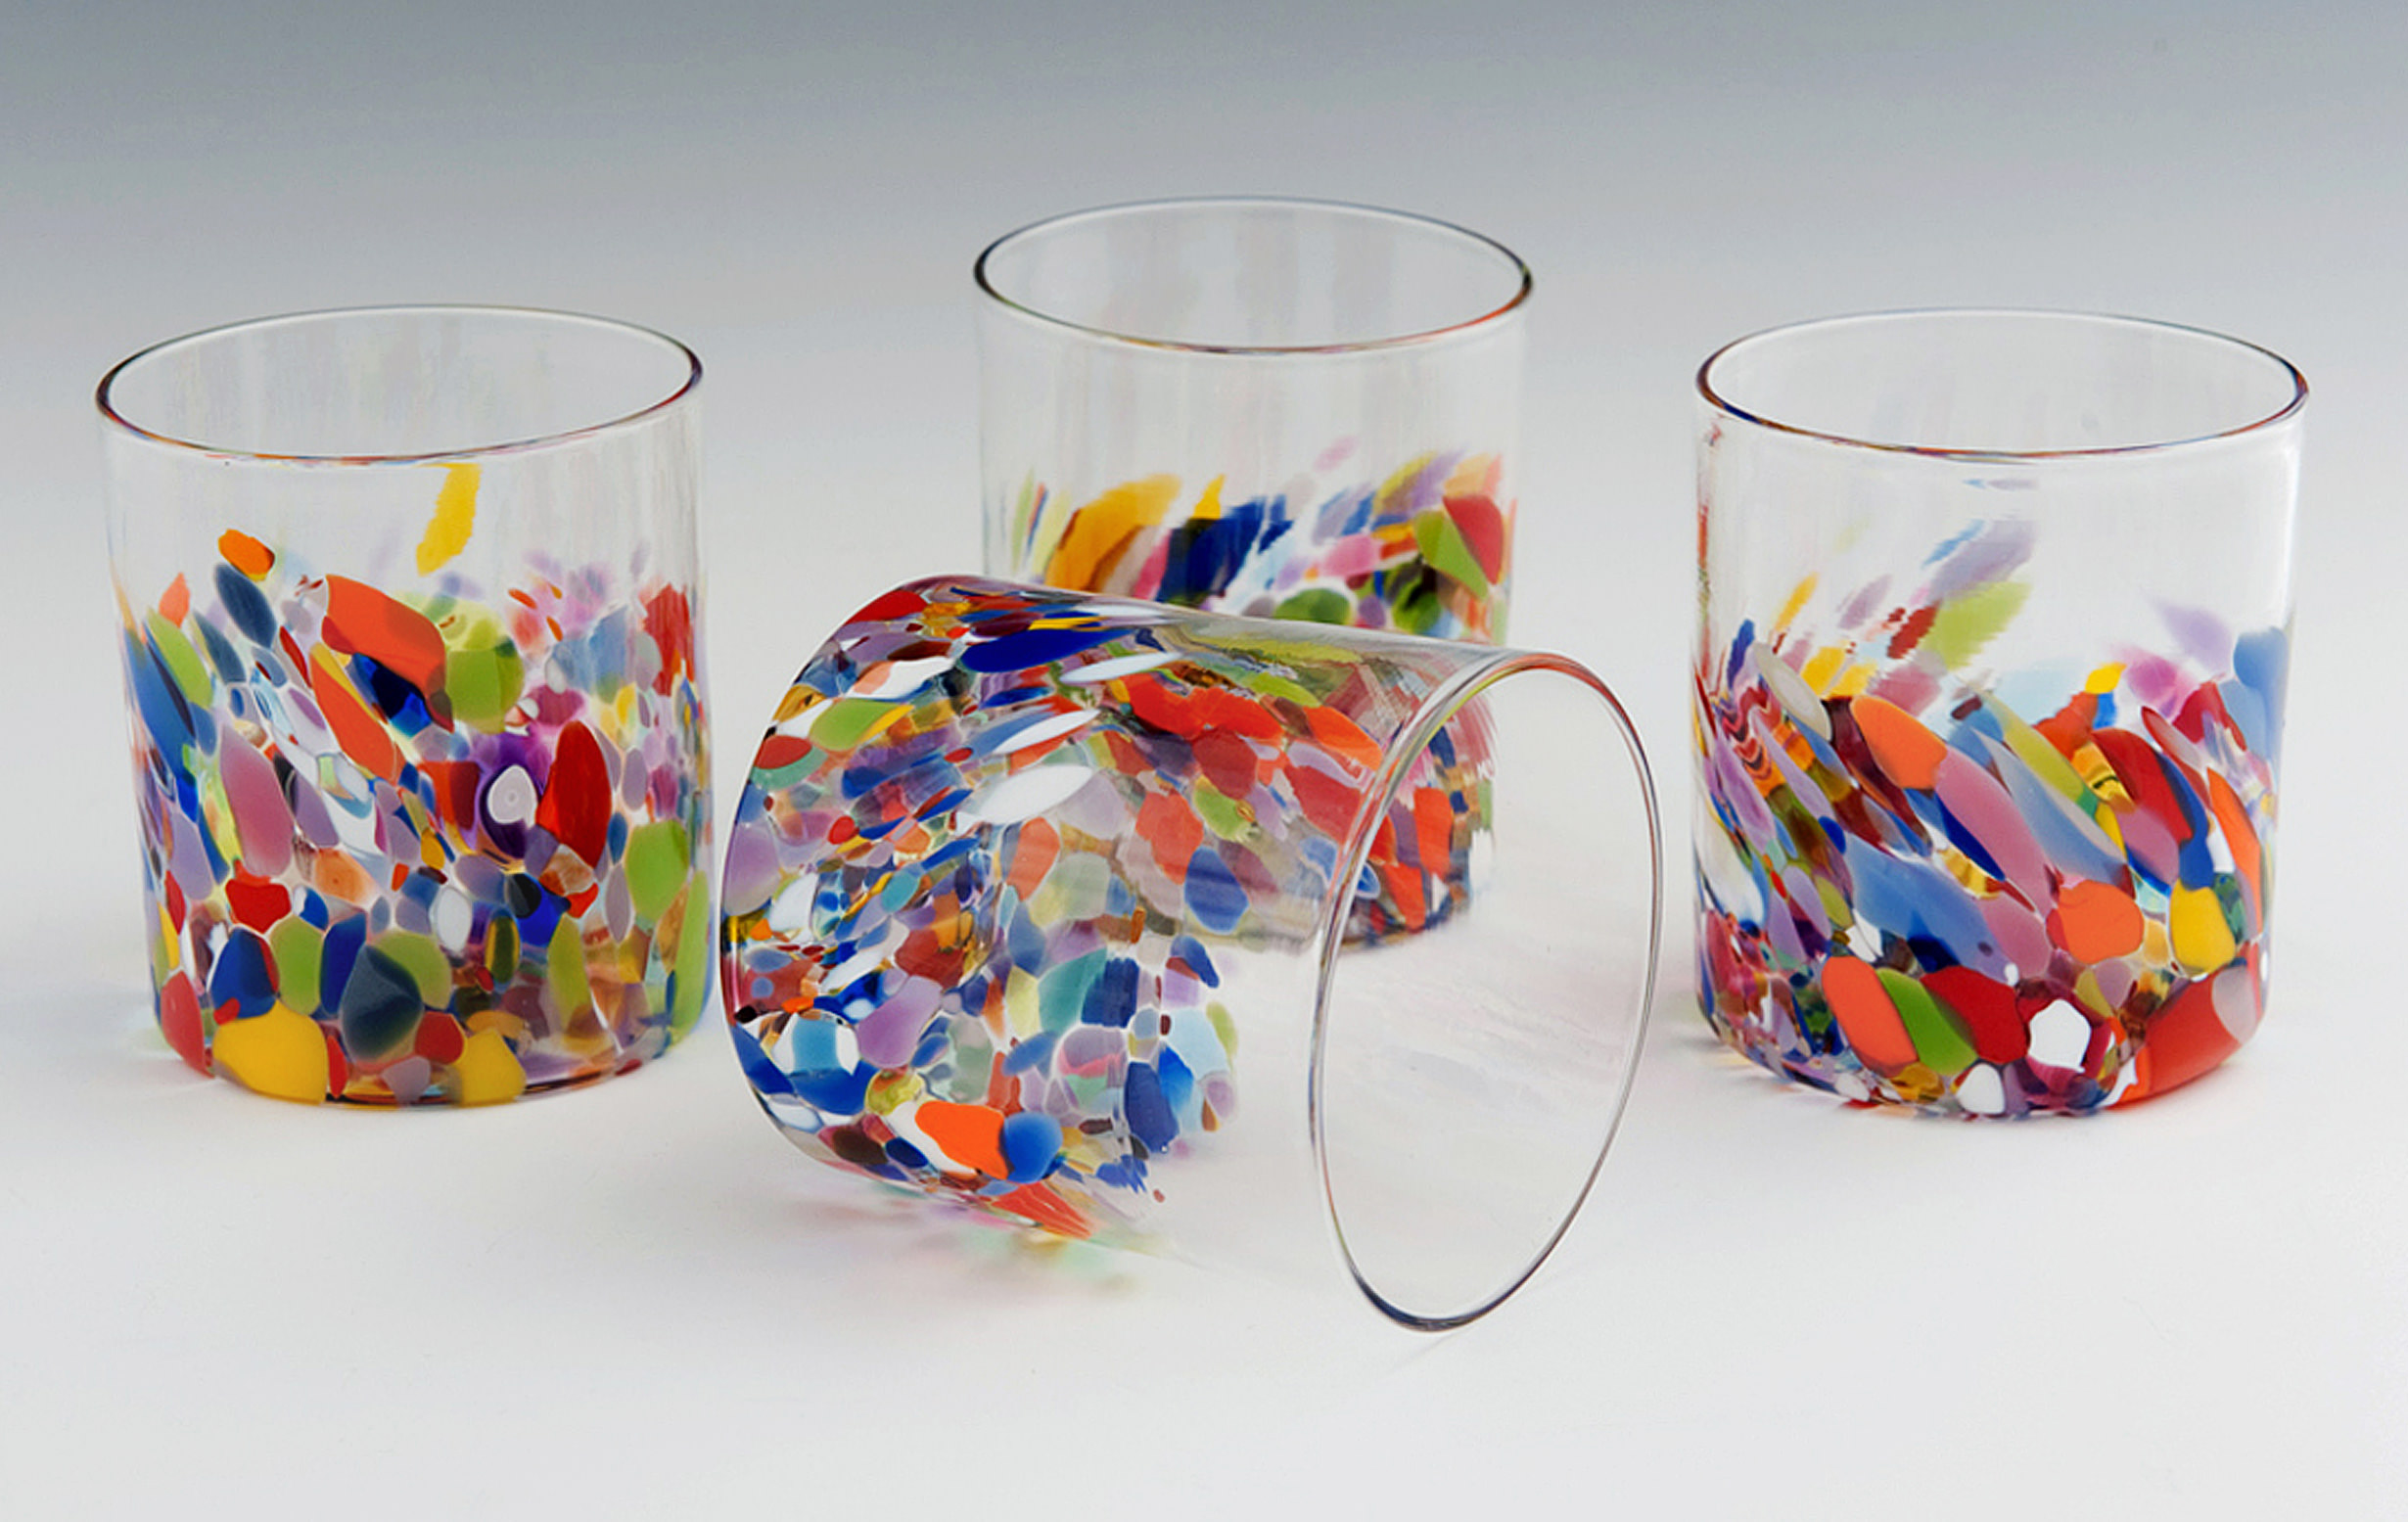 Clown Tumblers seen here in classic Clown Pattern.